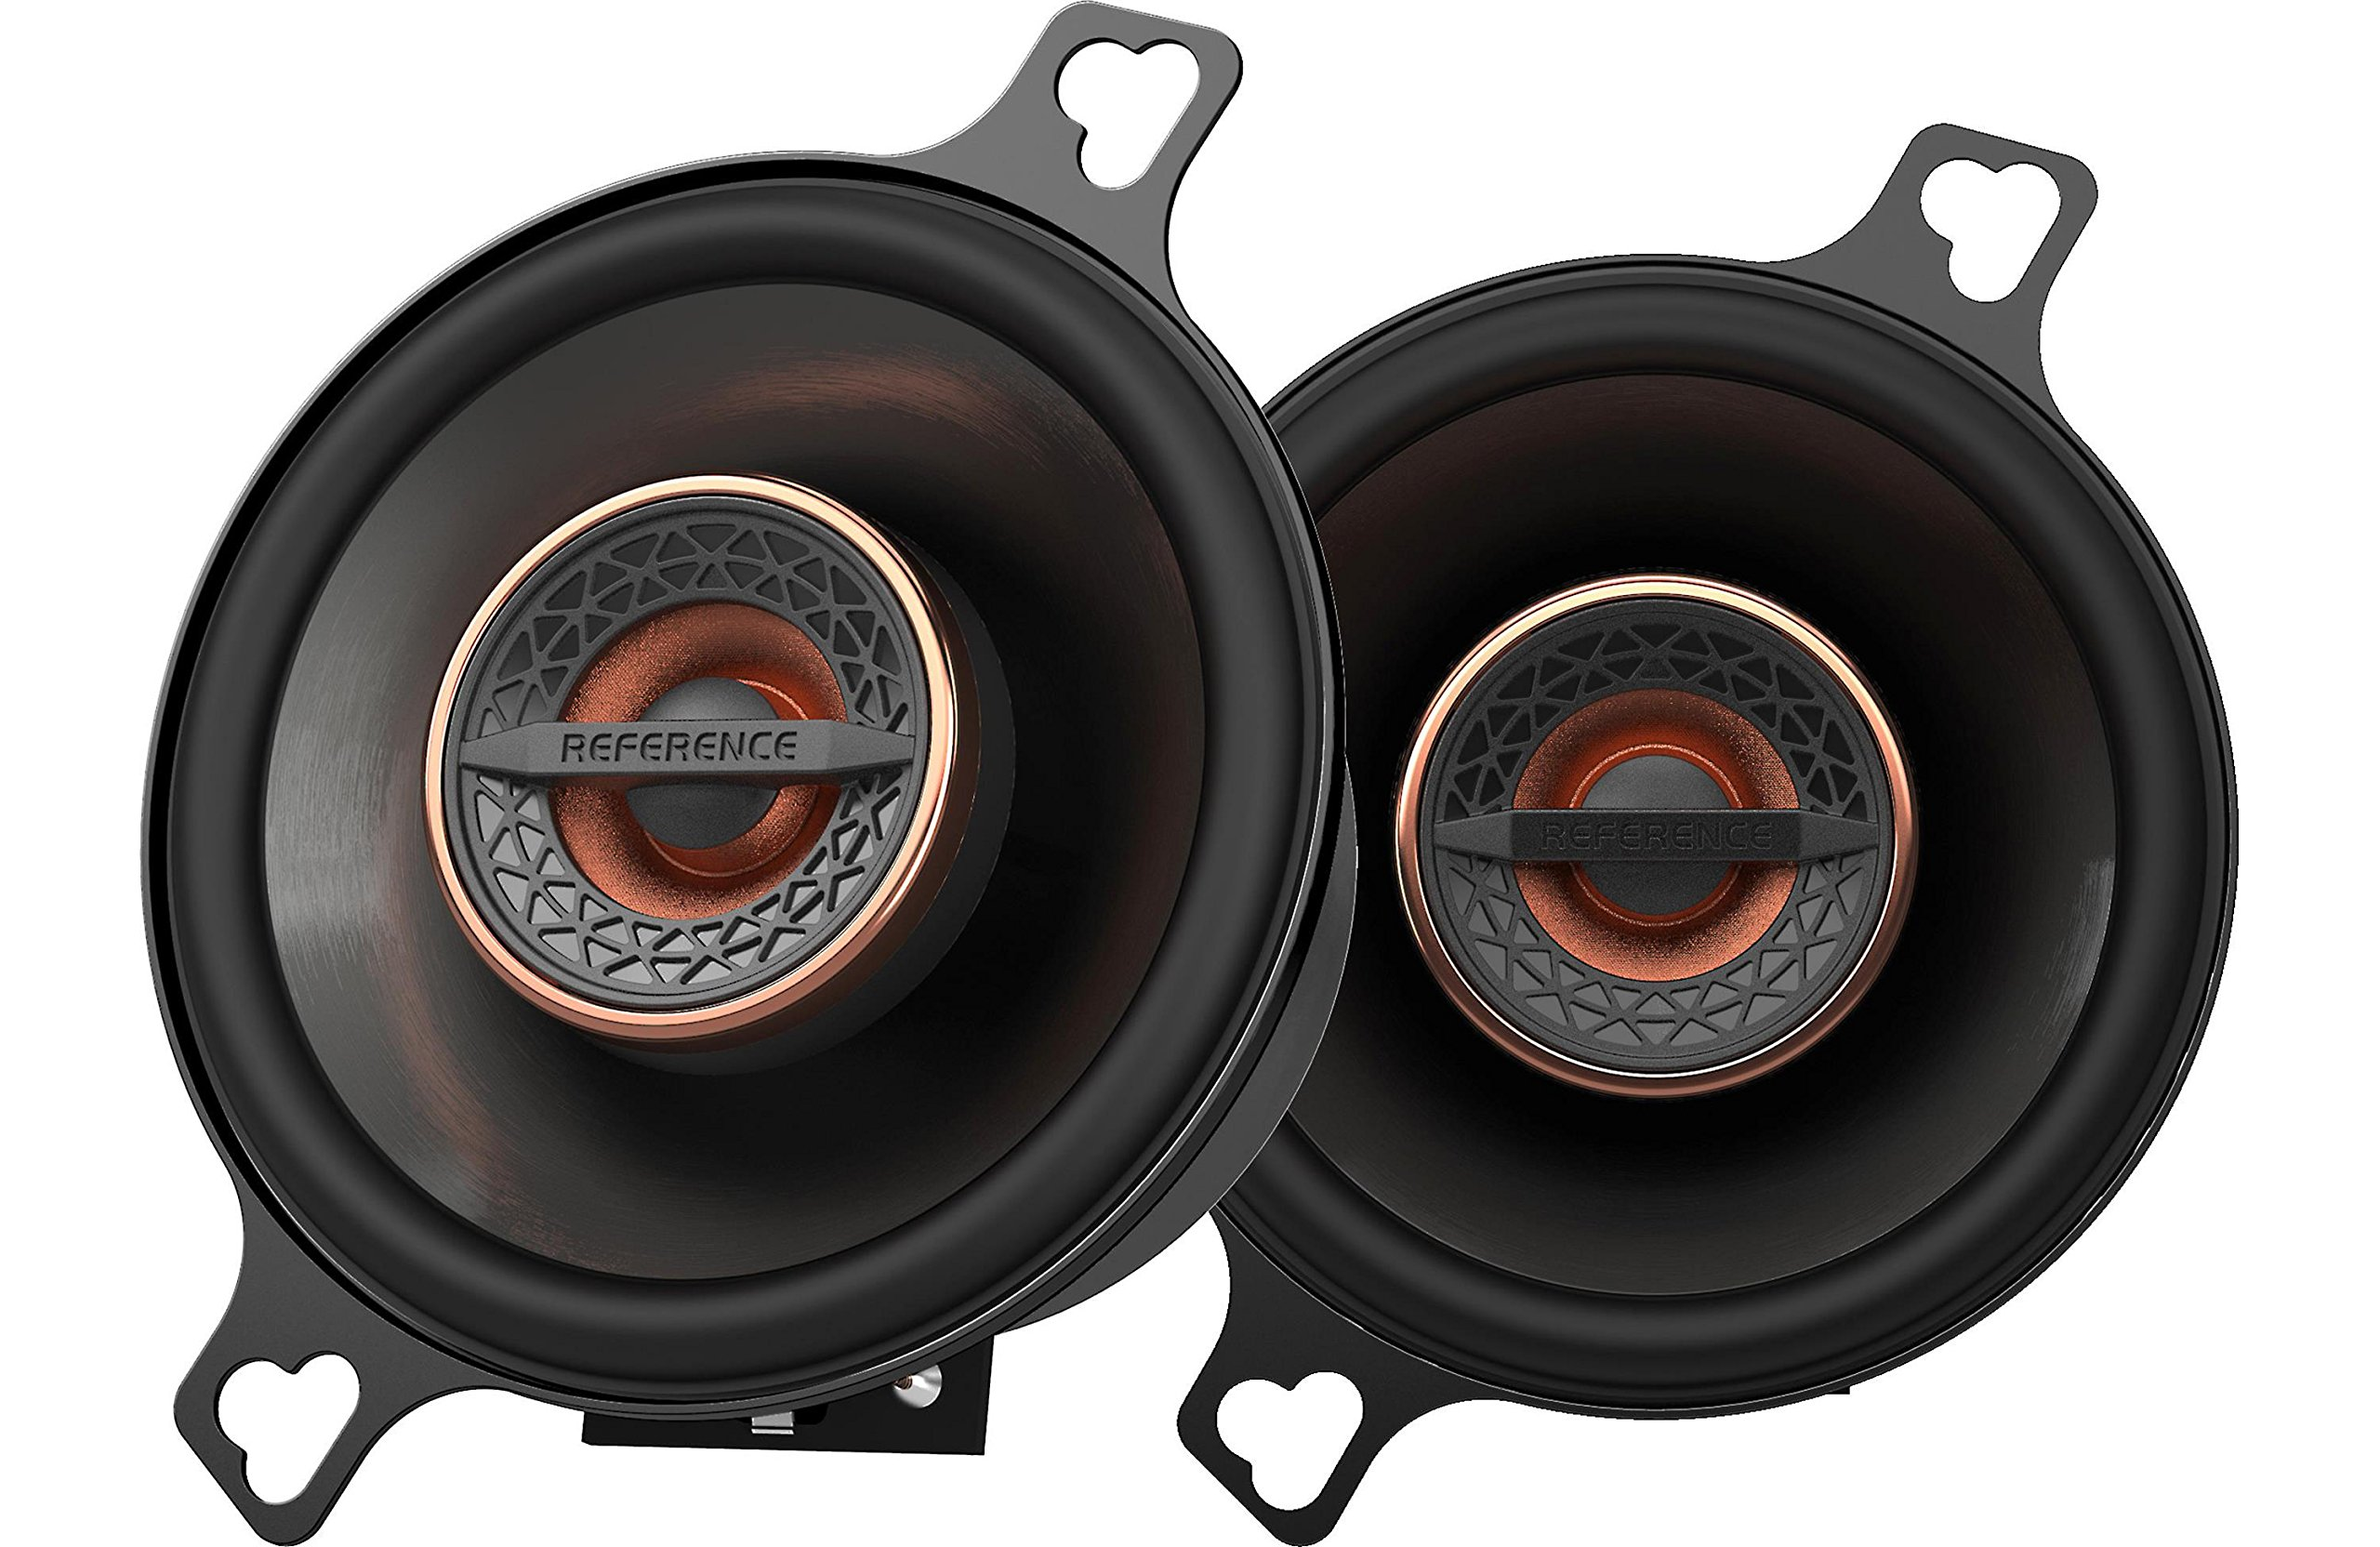 Infinity REF3022CFX 3.5'' 75W Reference Series Coaxial Car Speakers With Edge-driven Textile Tweeter, Pair